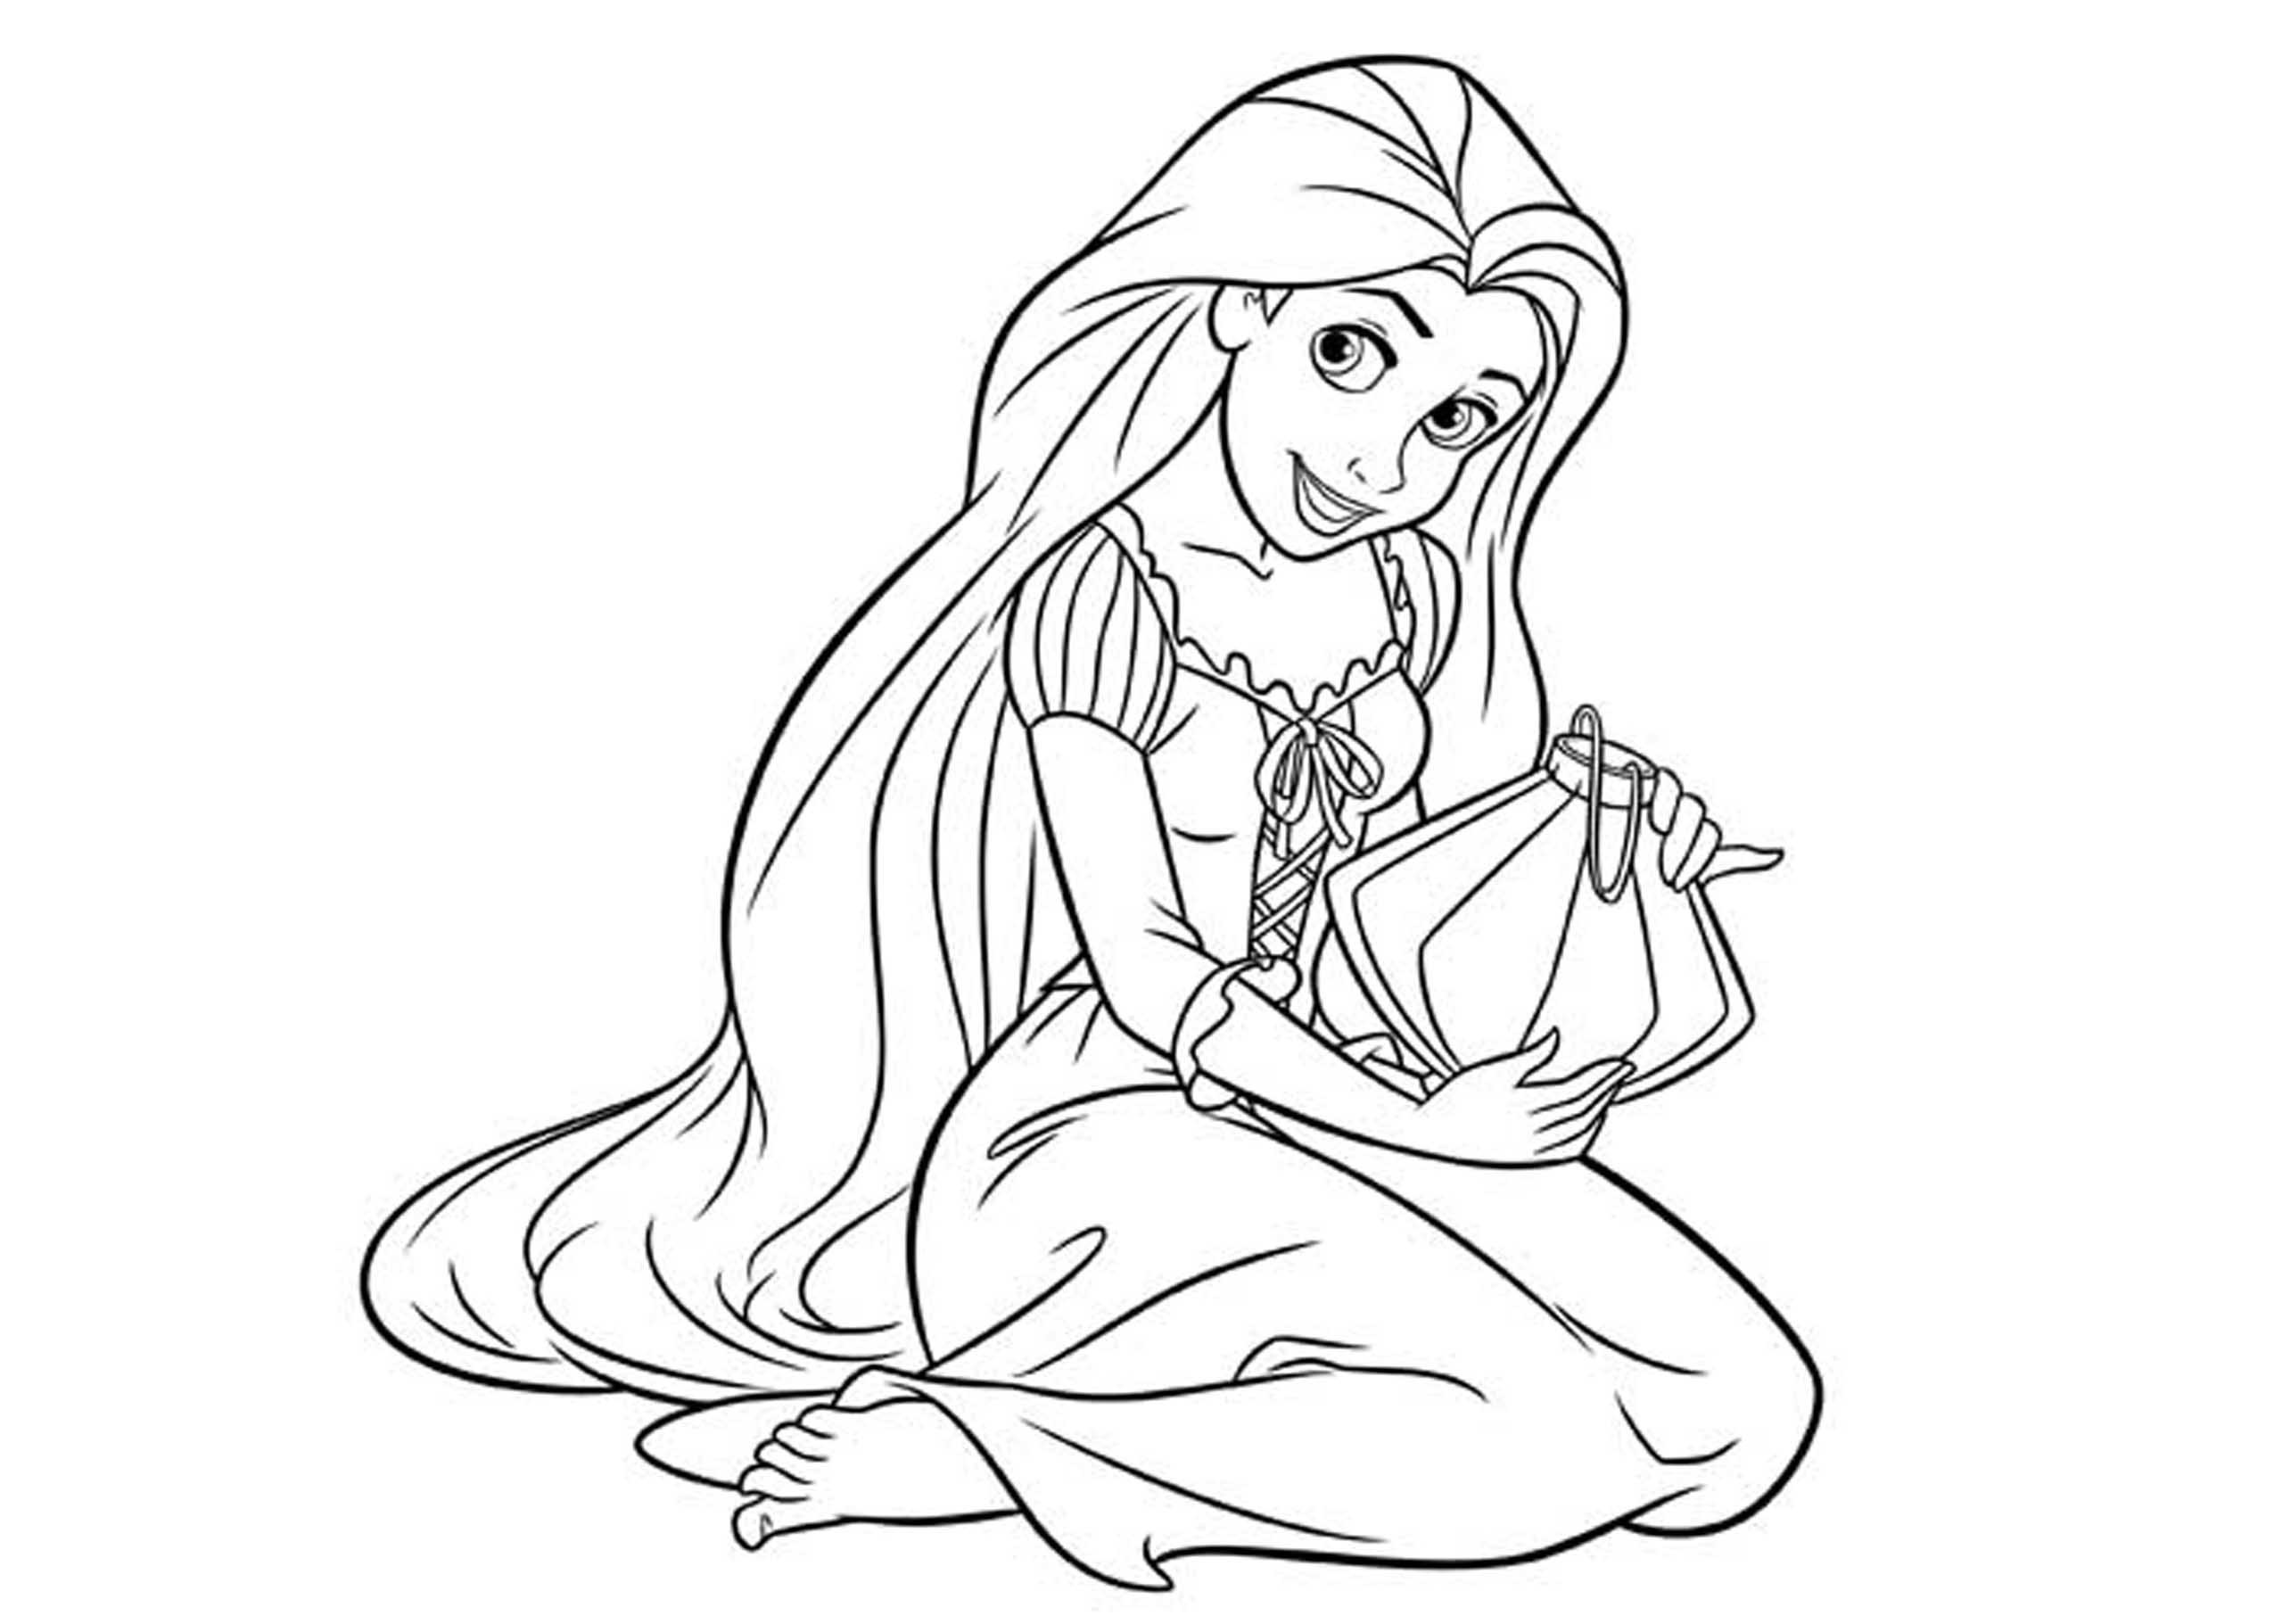 disney-princess-coloring-pages-to-print-of-disney-princess-coloring-pages-to-print Disney Princess Coloring Pages to Print Cartoon